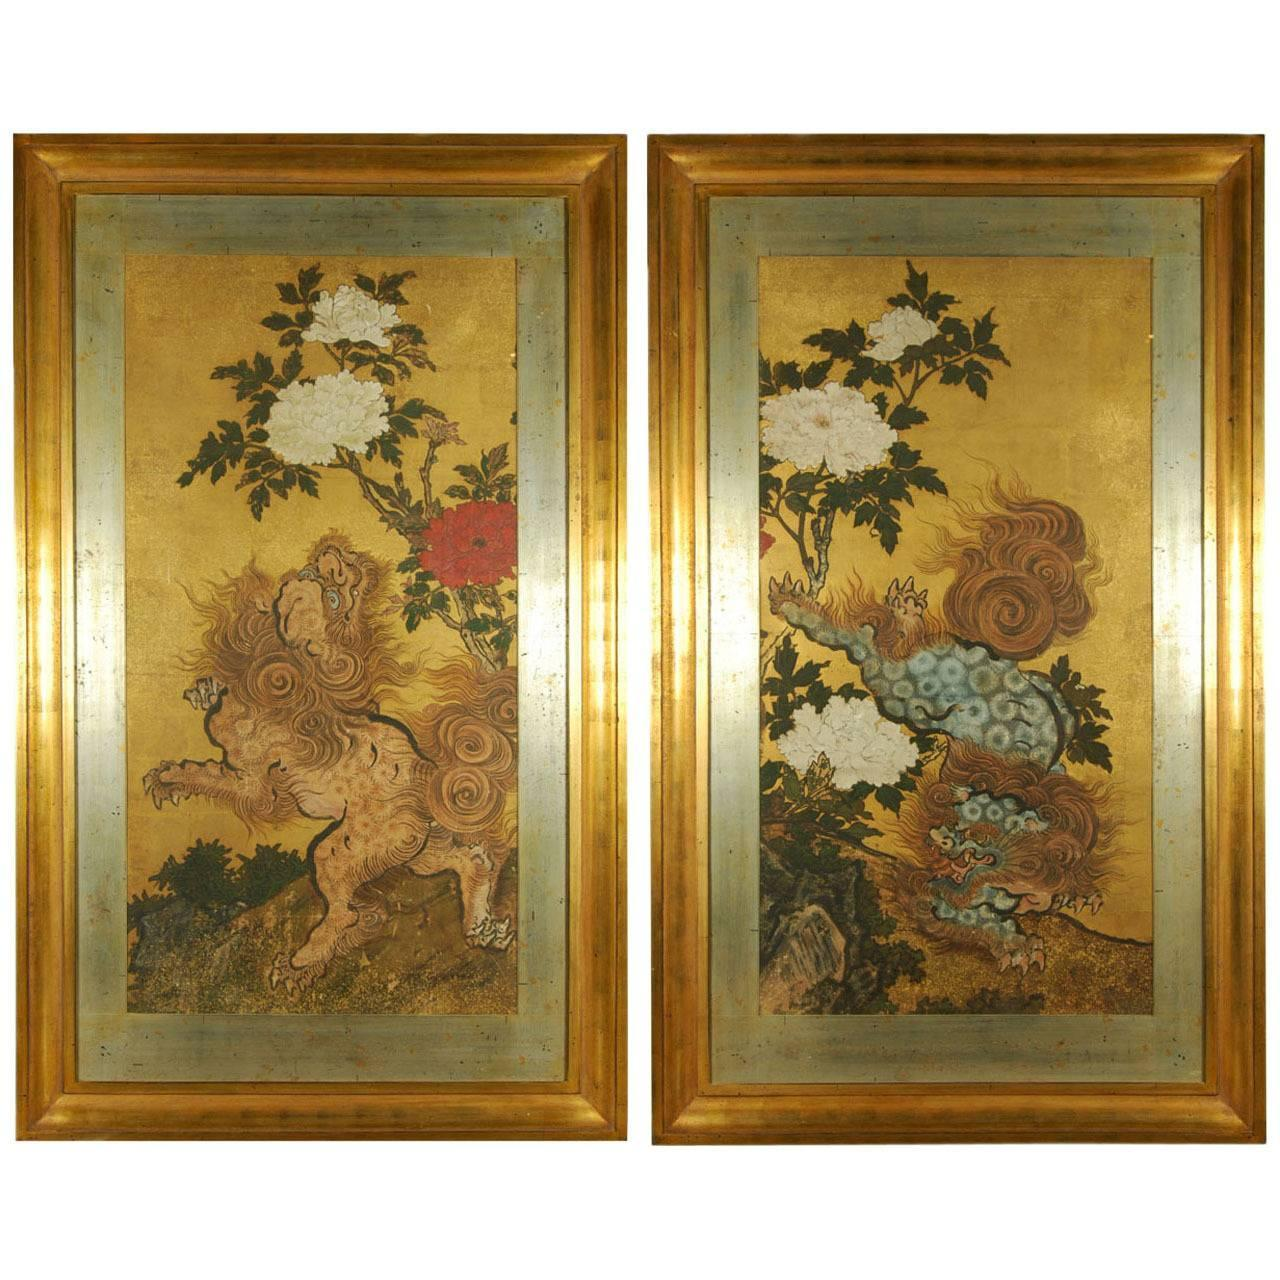 Antique japanese screens for sale - Pair Of Antique Japanese Paintings Of Karashishi Edo Period 18th Century For Sale At 1stdibs